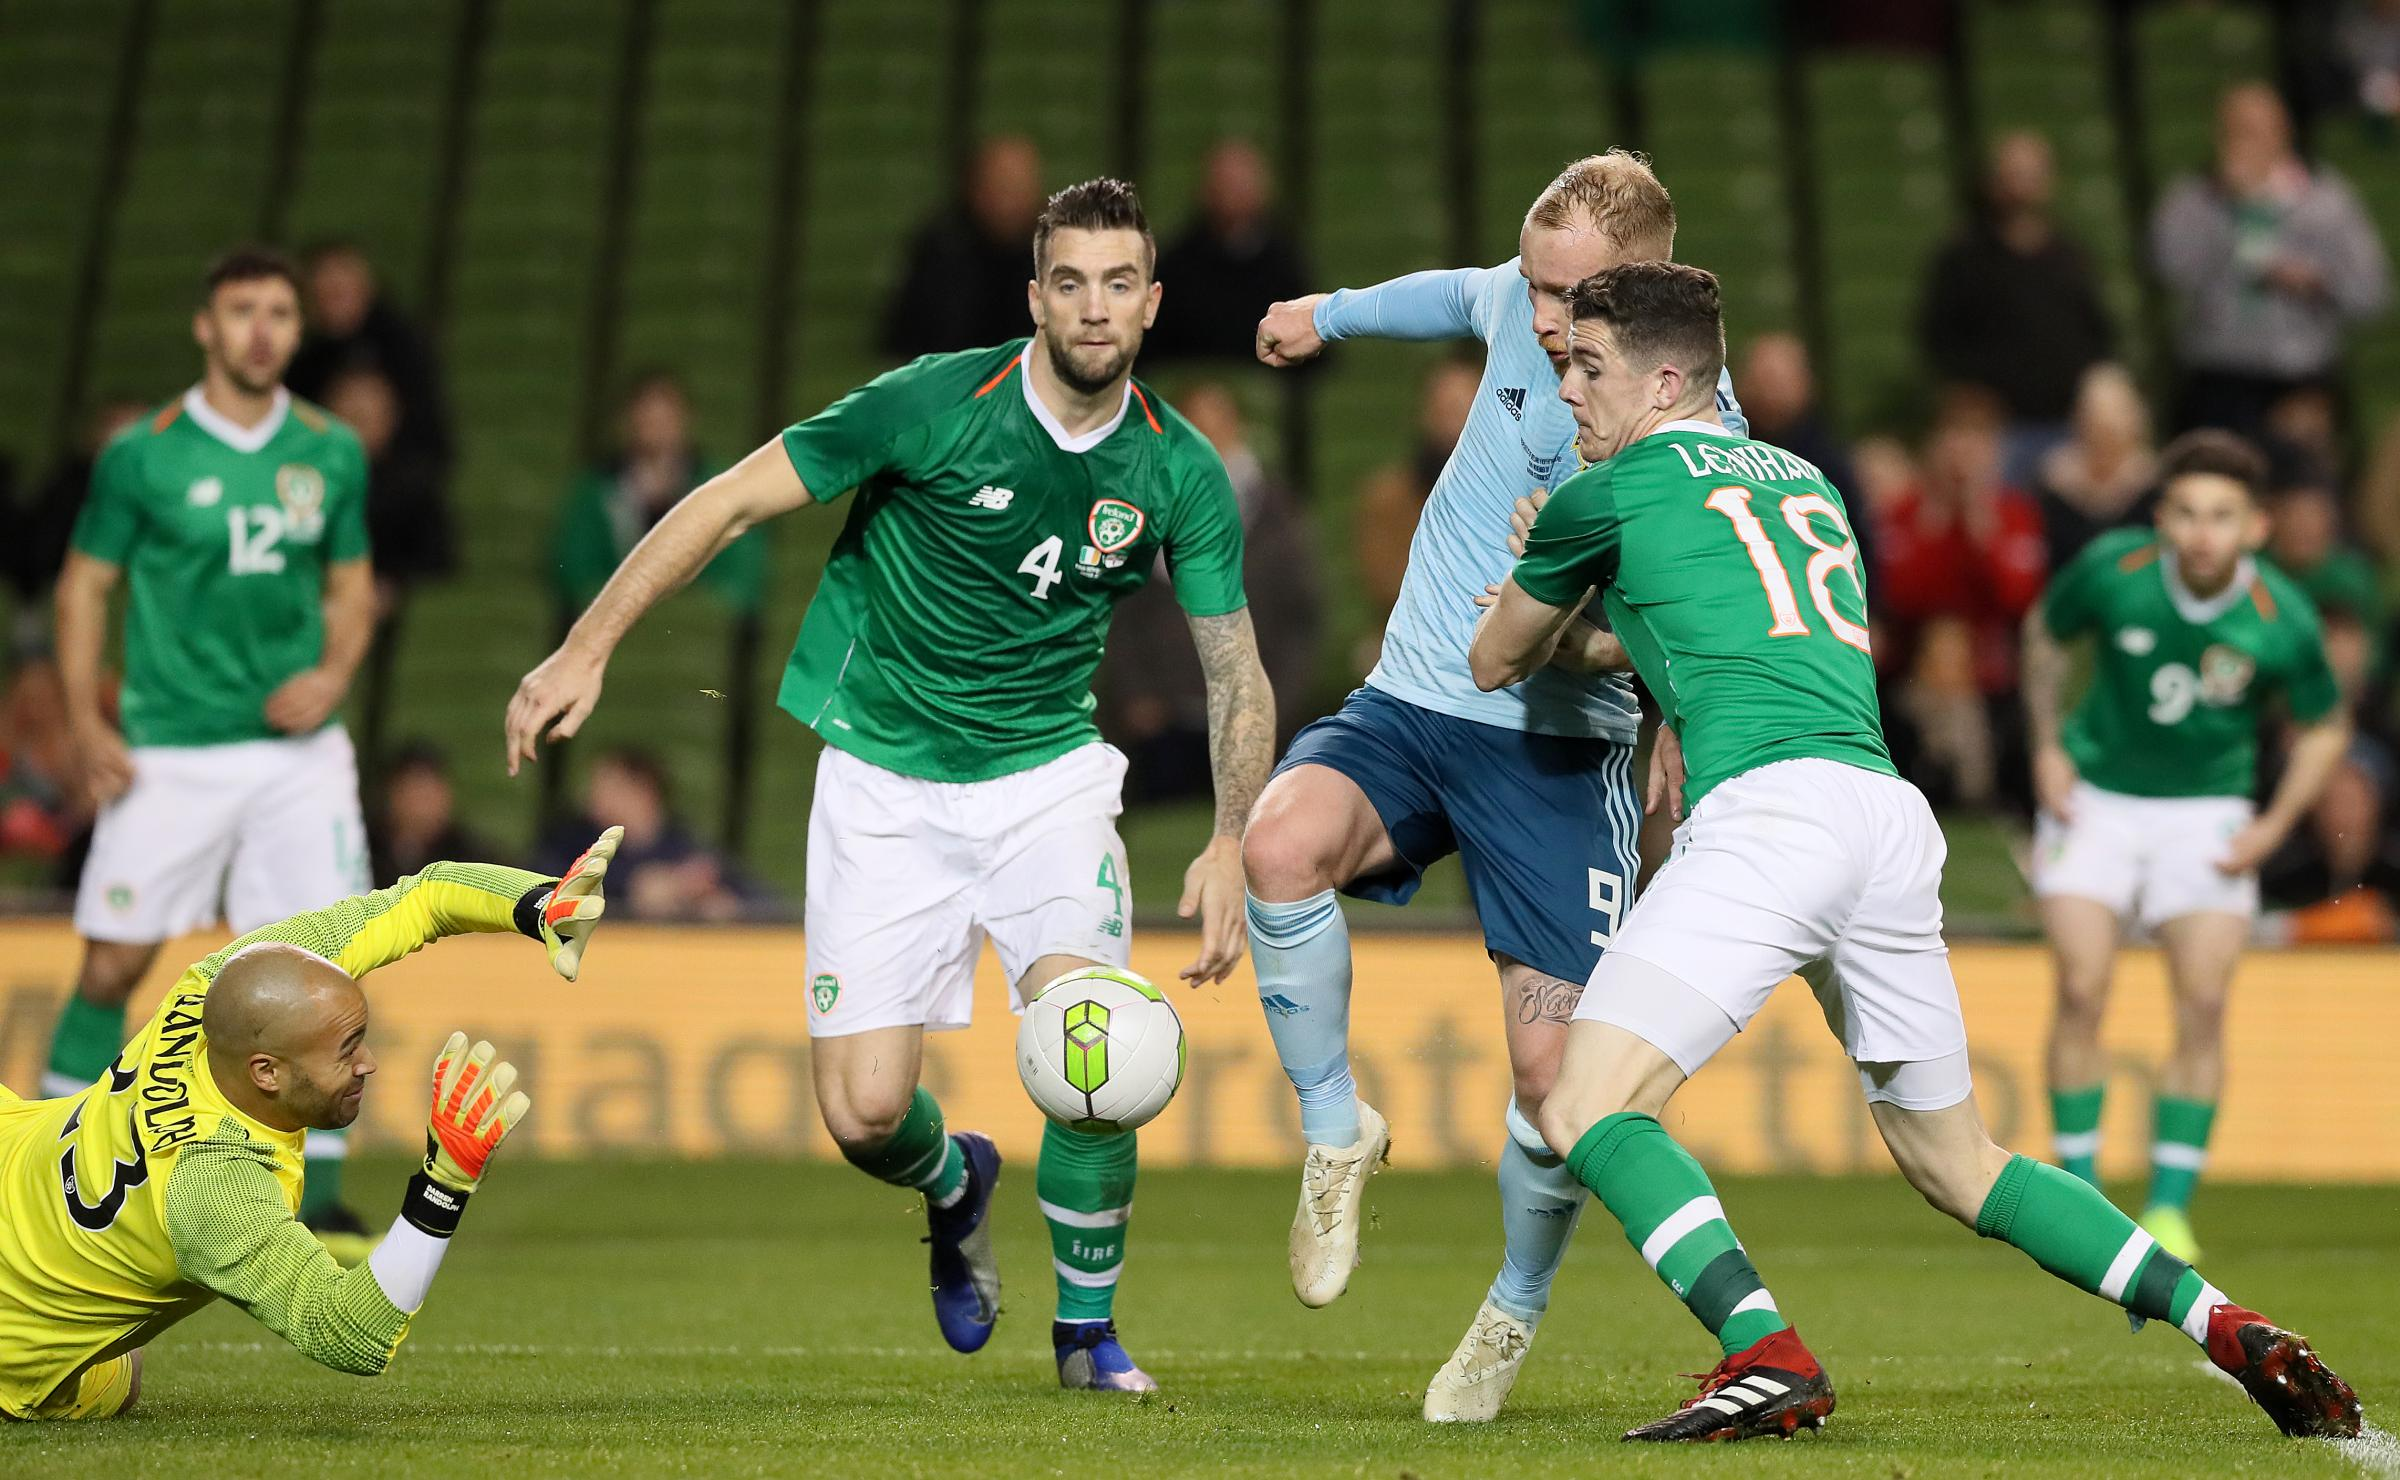 Shane Duffy to travel with Ireland squad